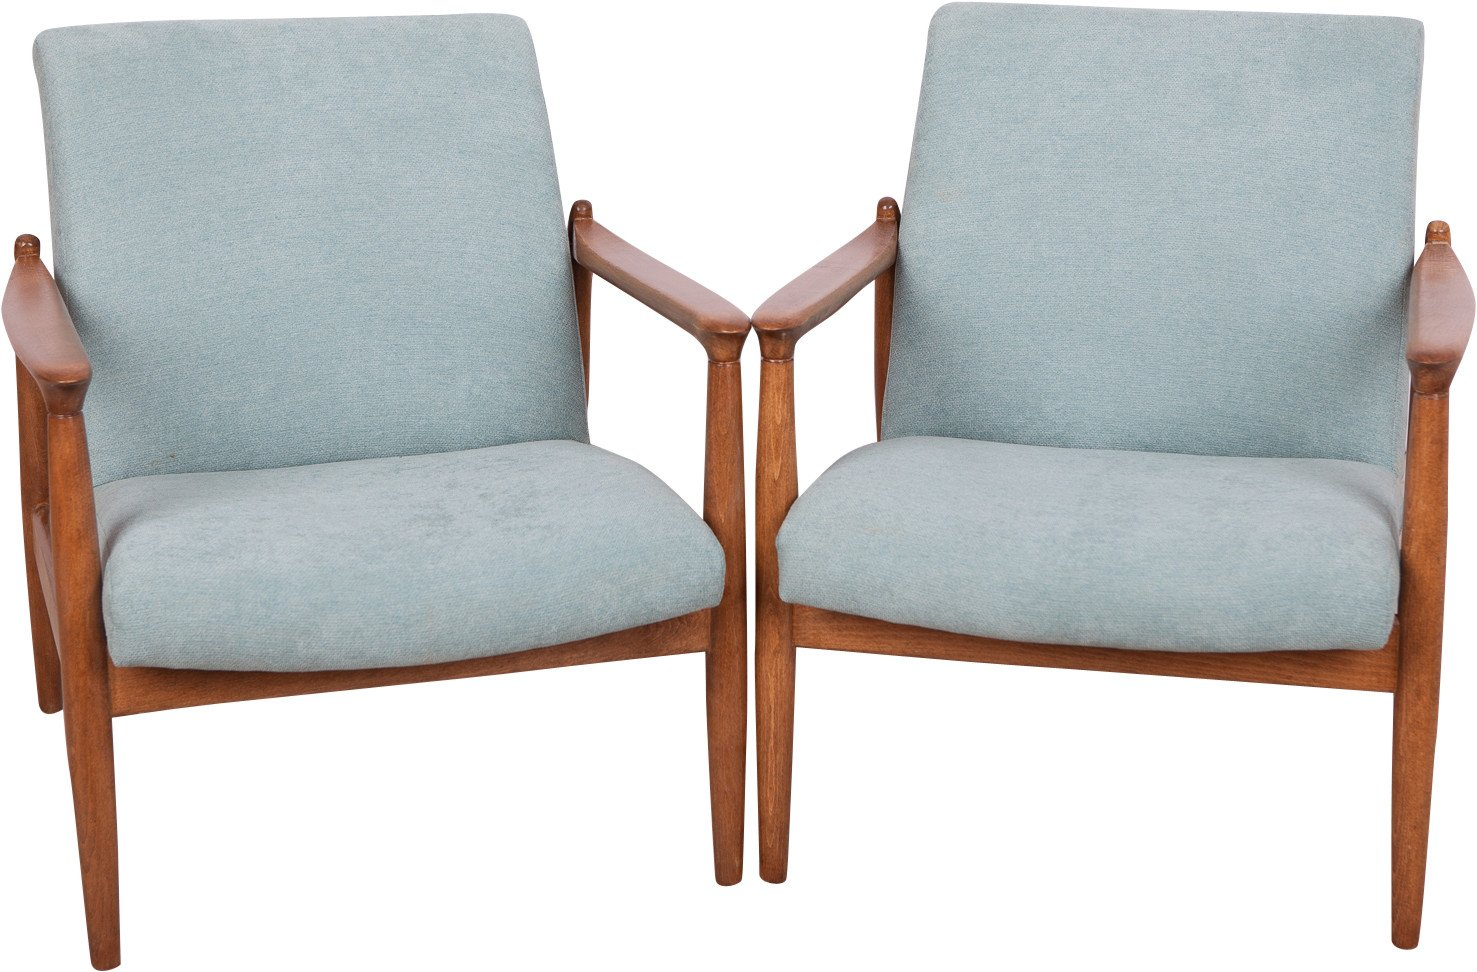 Pair of Armchairs by E. Homa, Poland, 1970s